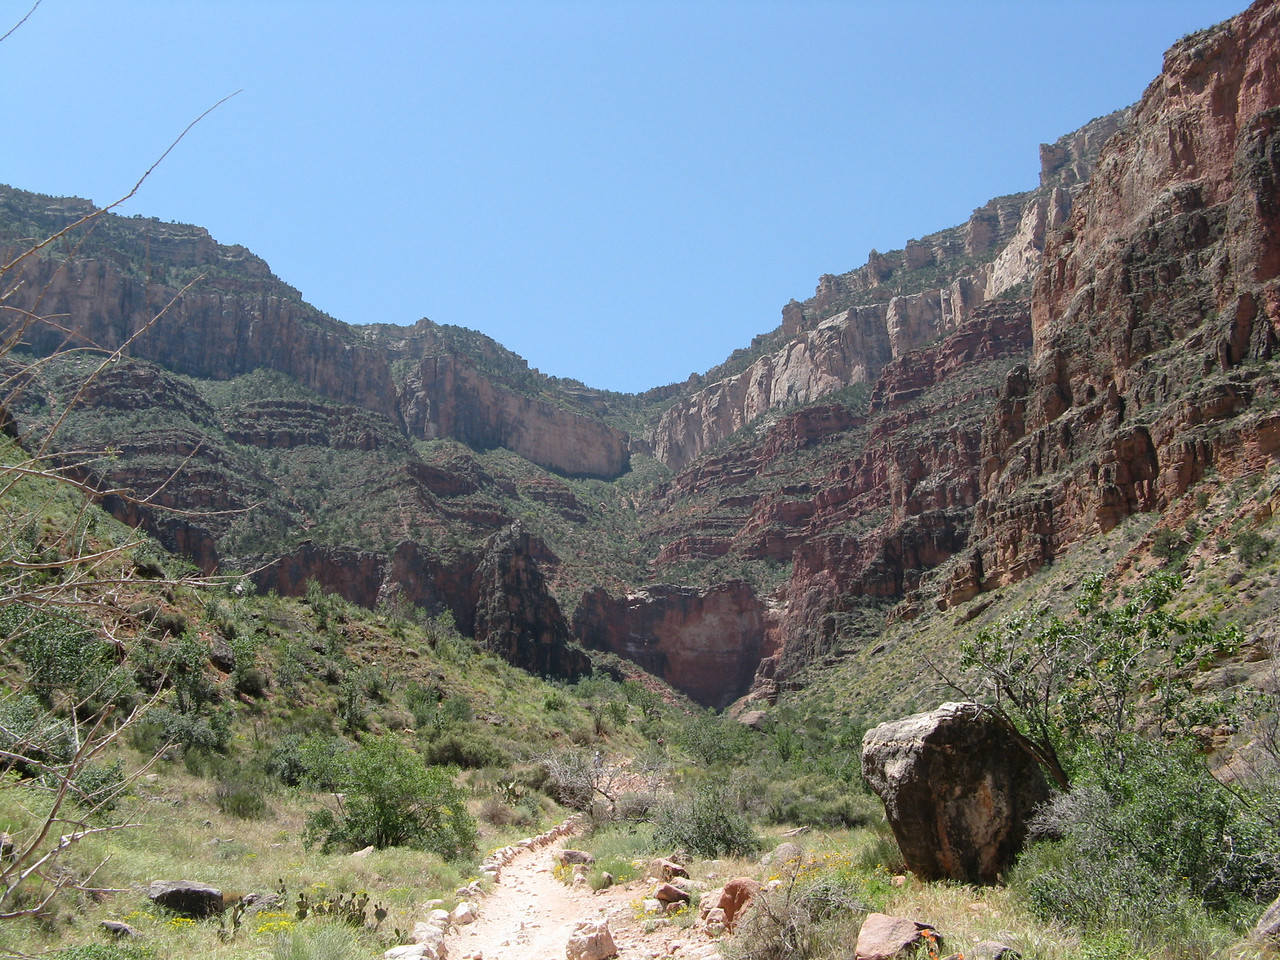 The trail runs across mildly sloping landscape that is composed of rocks which are part of the Tonto Group.  The vegetation on the Tonto Platform comprises a desert-scrub habitat.